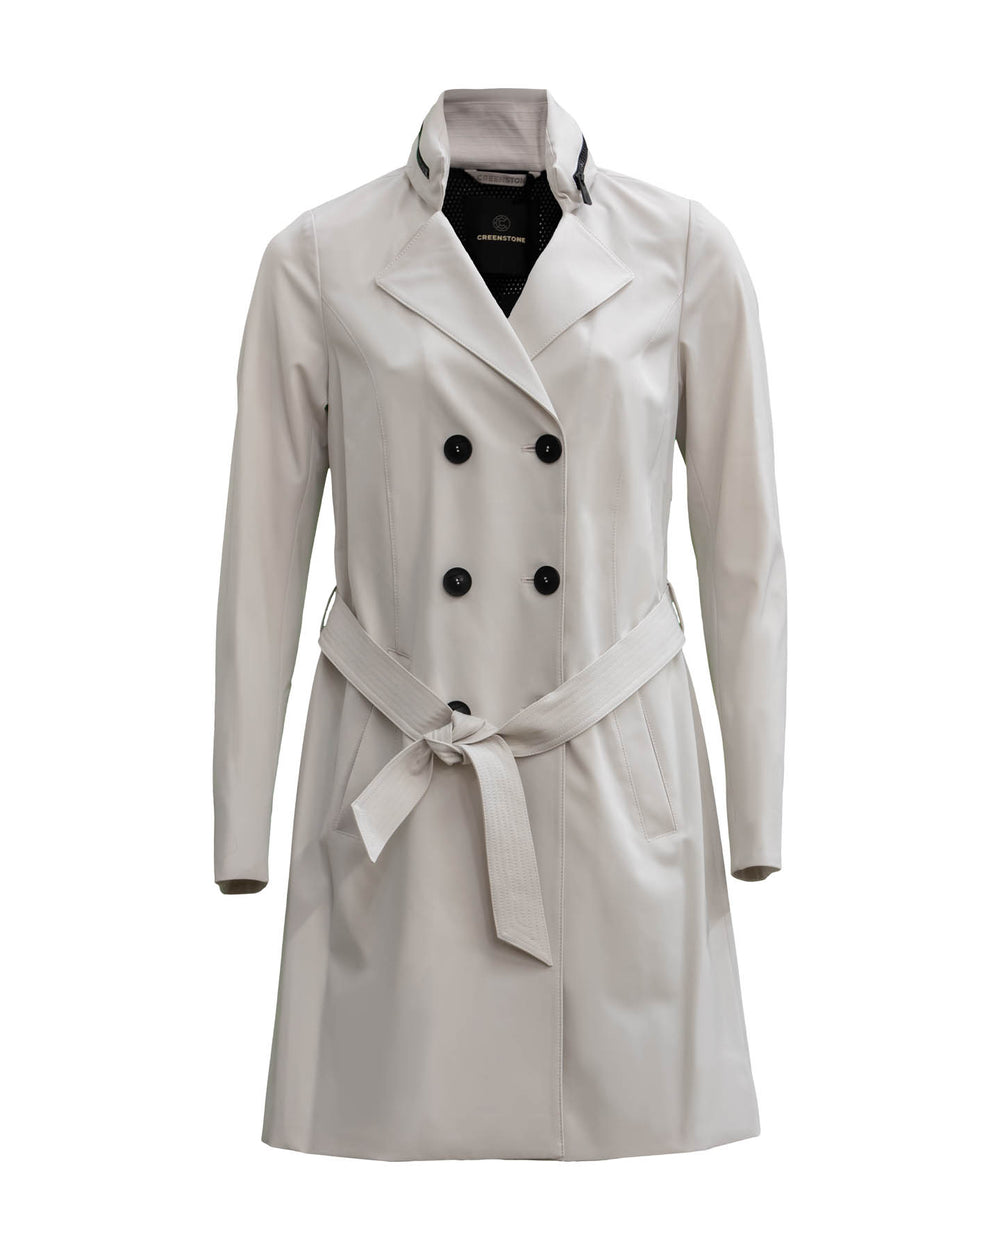 Creenstone Coats